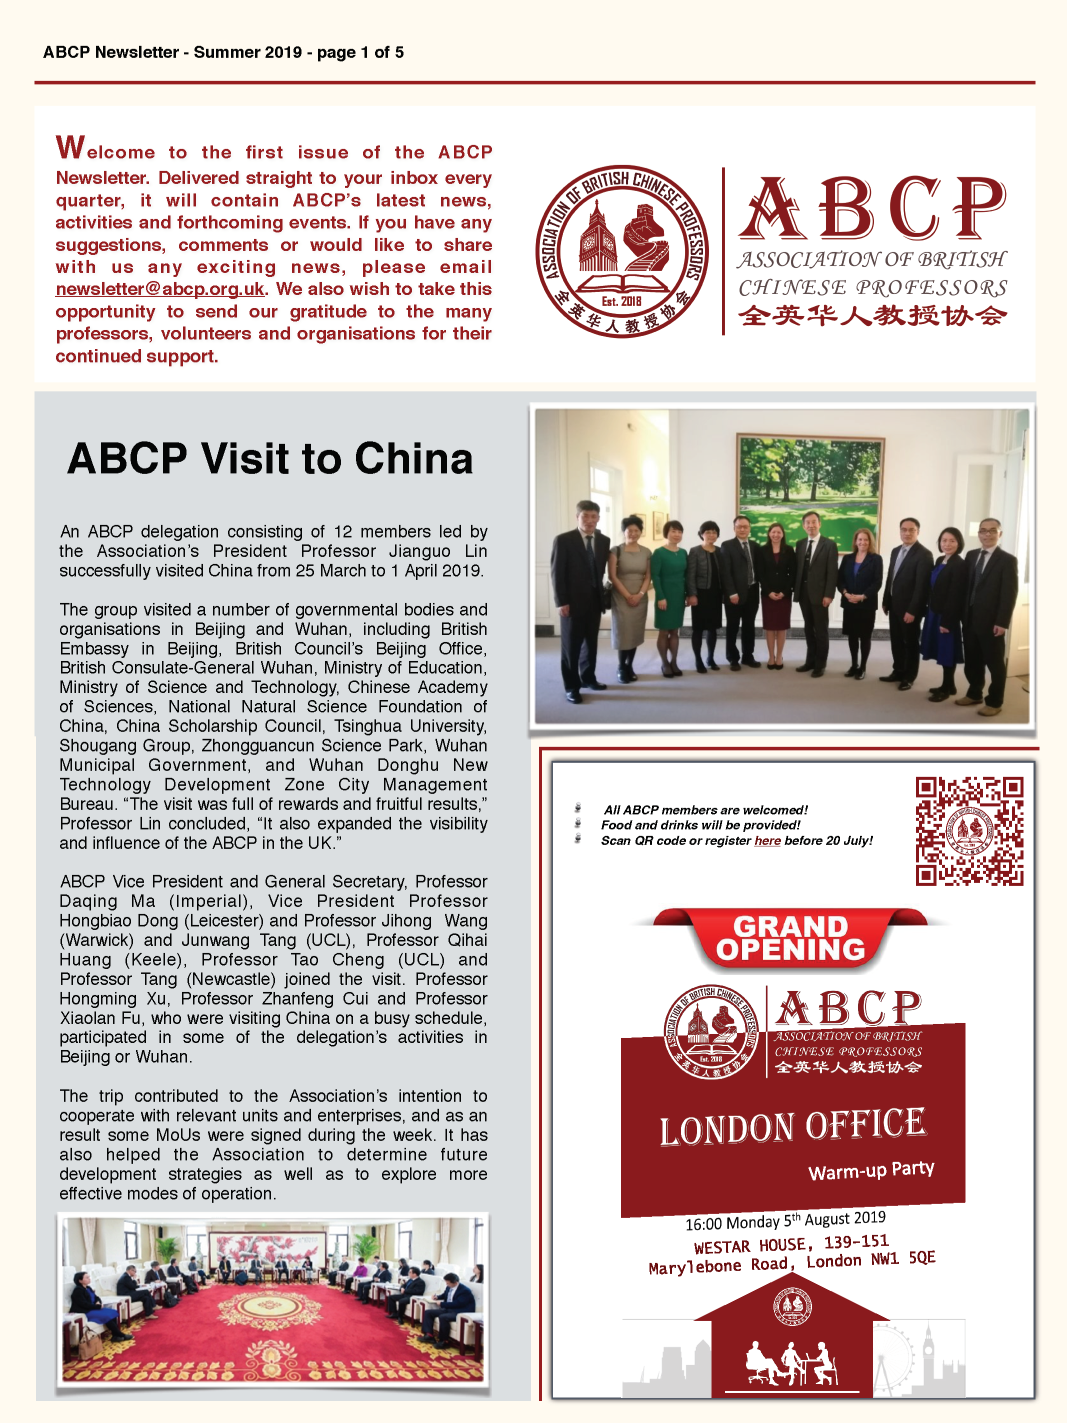 ABCP Newsletters (June 2019)